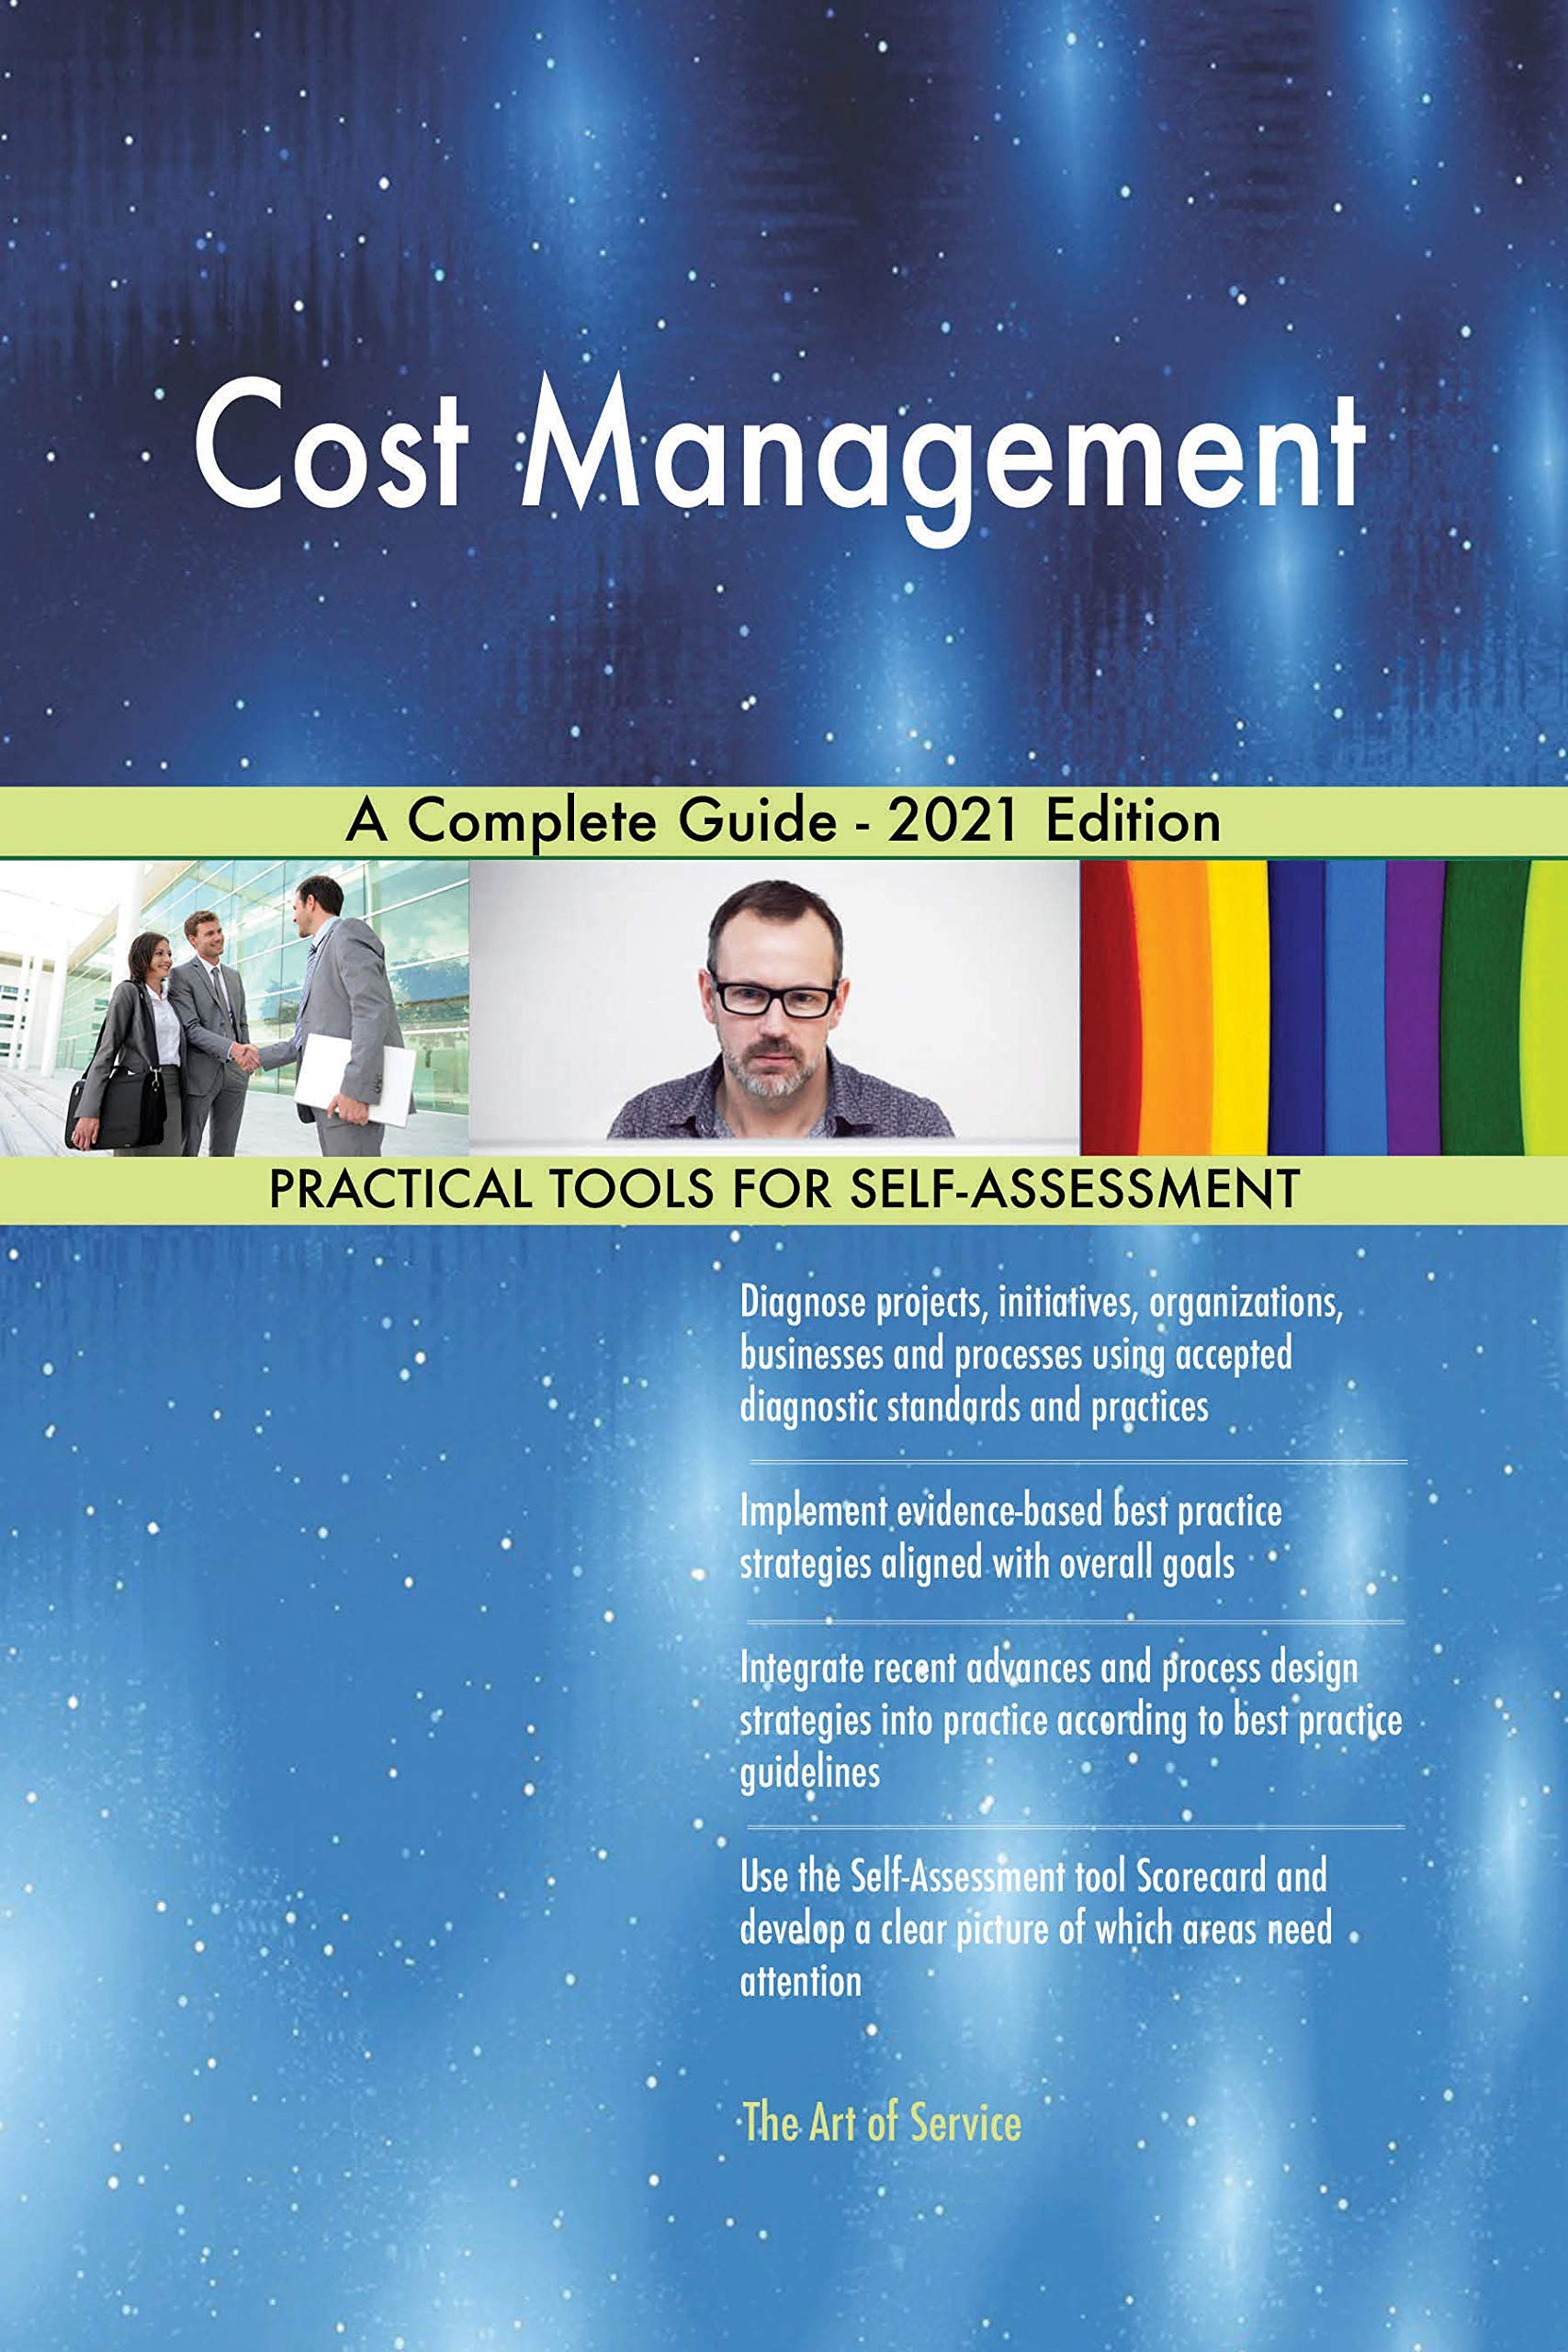 Cost Management A Complete Guide - 2021 Edition